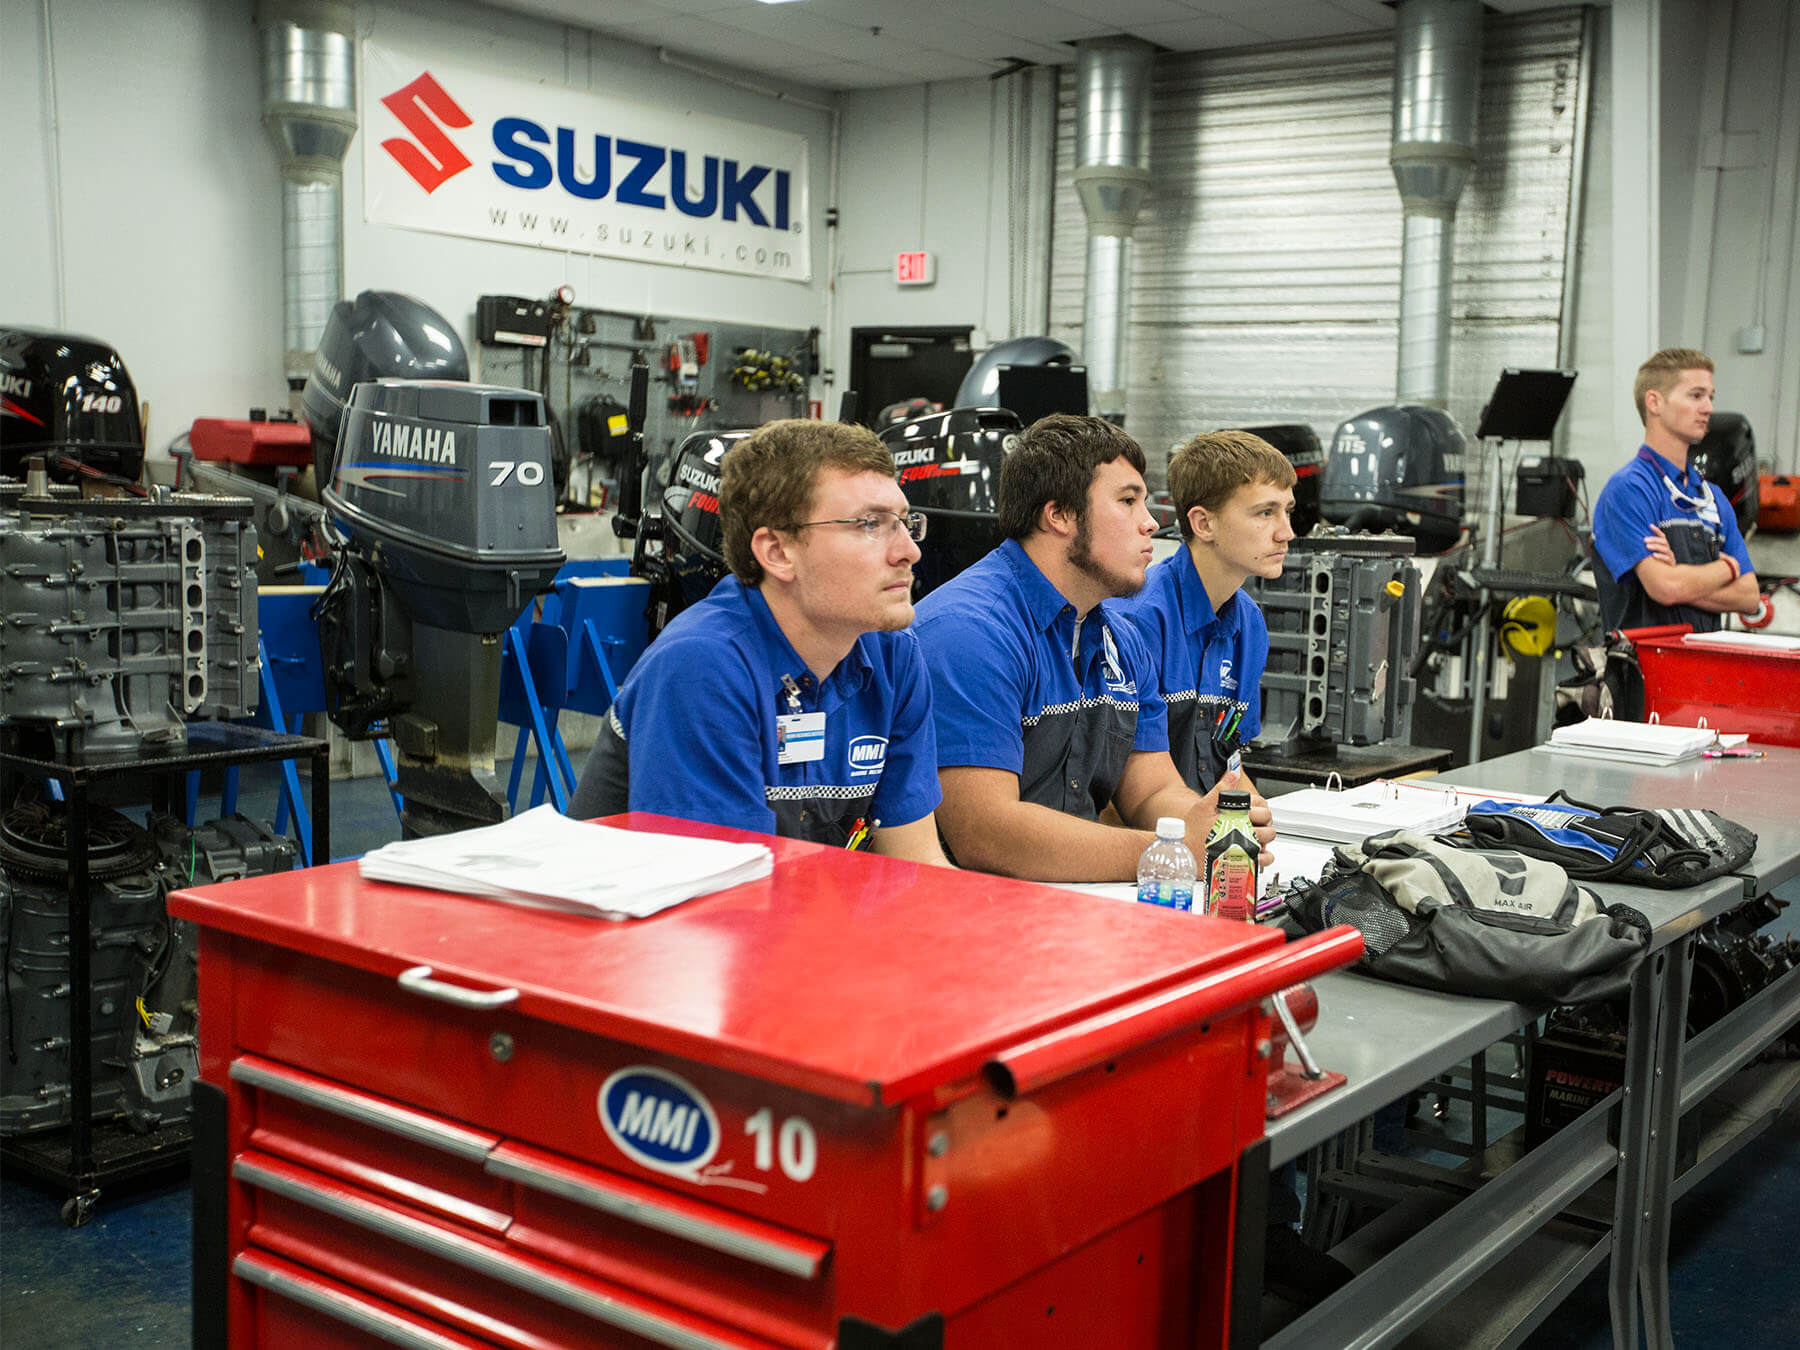 MMI students looking towards the front of the classroom in the Suzuki lab